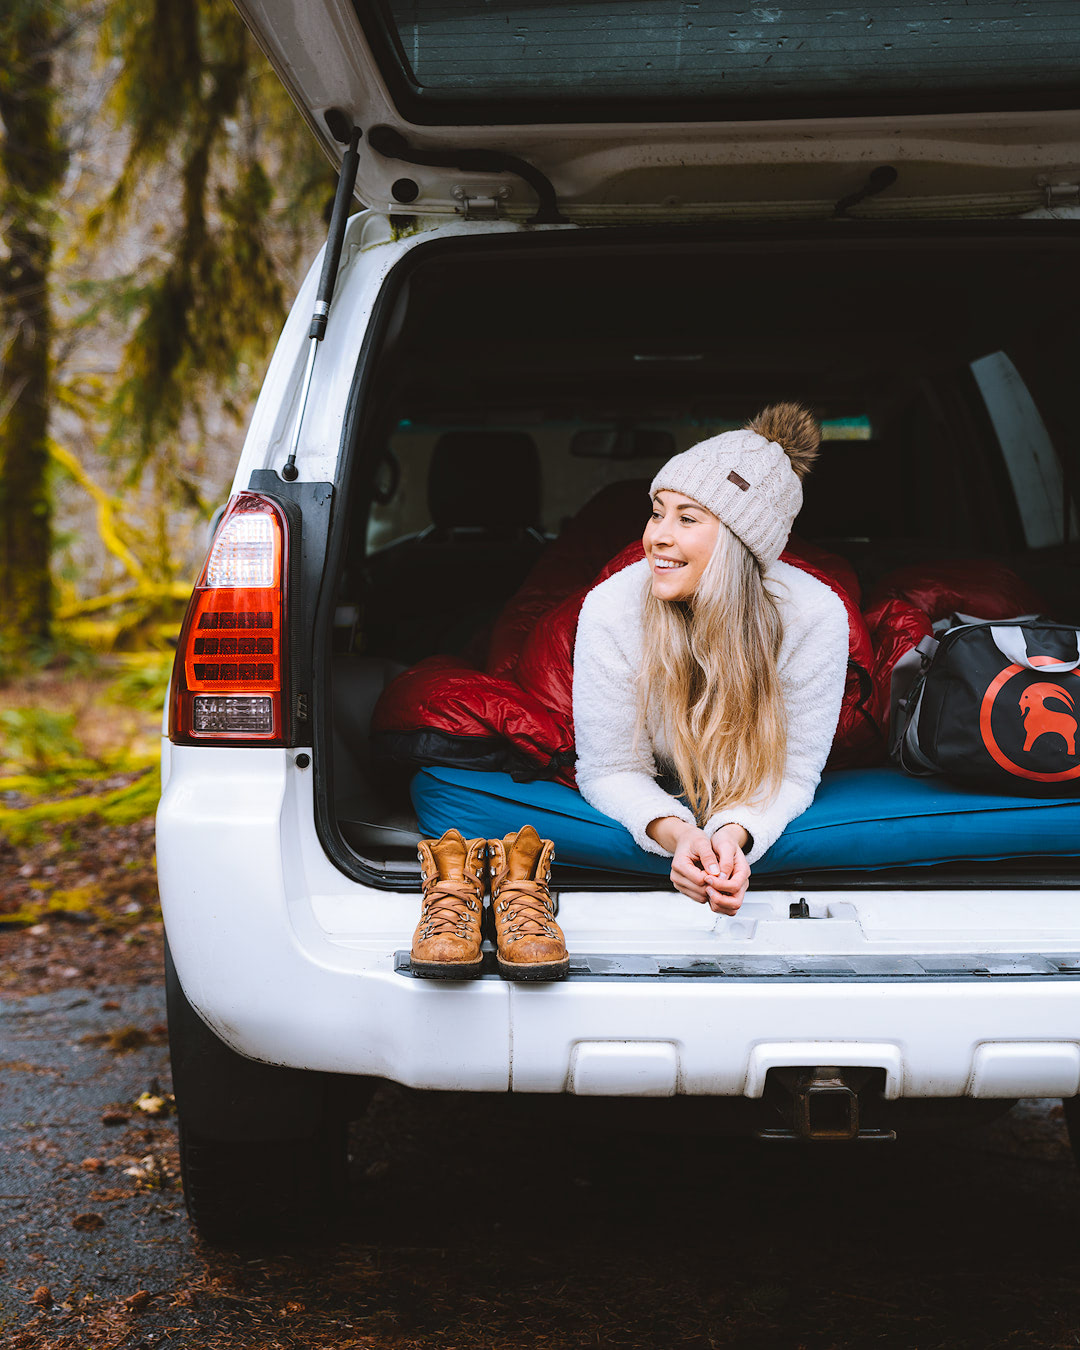 How To Travel Full Time - Must Know Tips for Affording to Travel the World - Car Camping